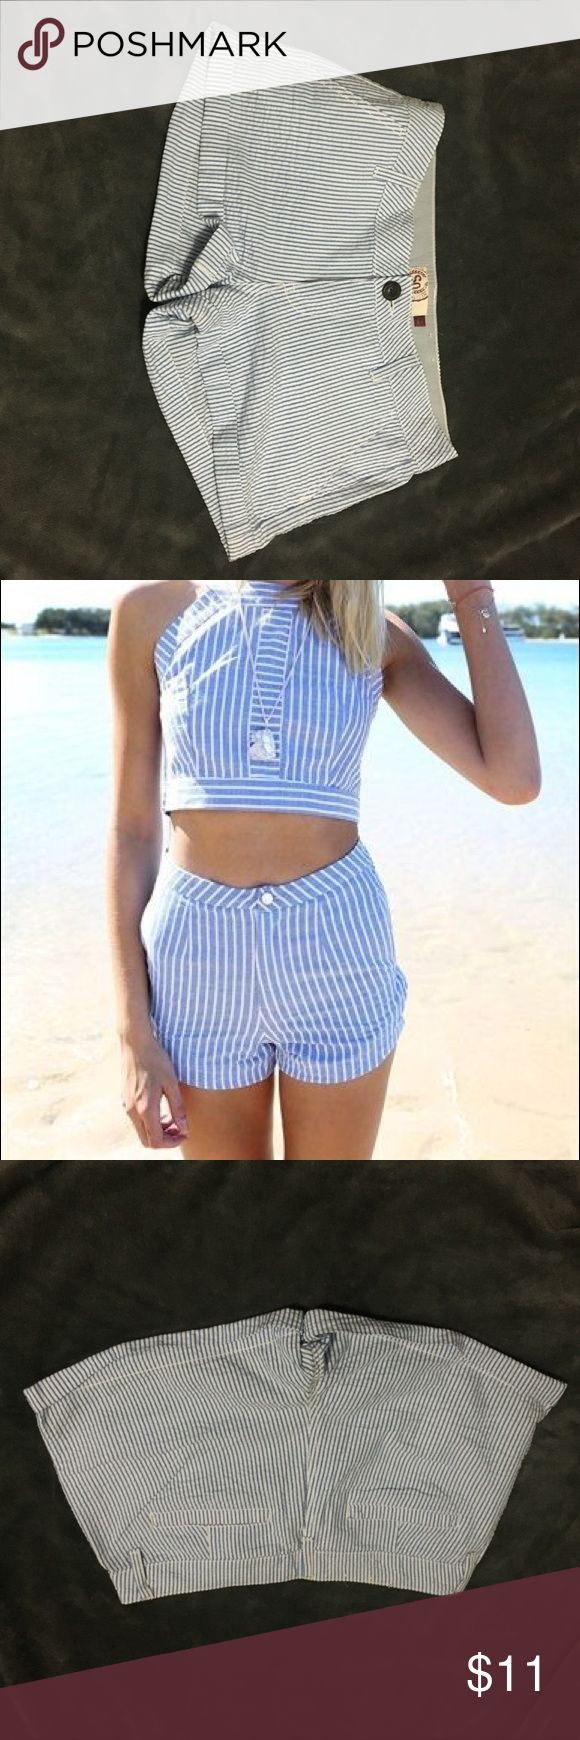 So Shorts Blue & White Striped Cuffed Low Rise So Shortie Shorts Size 8 Seersucker Blue & White Striped Cuffed Low Rise. The picture of the model is an idea about how to style the shorts with a crop top, and not the actual shorts. 100%cotton so Shorts Jean Shorts